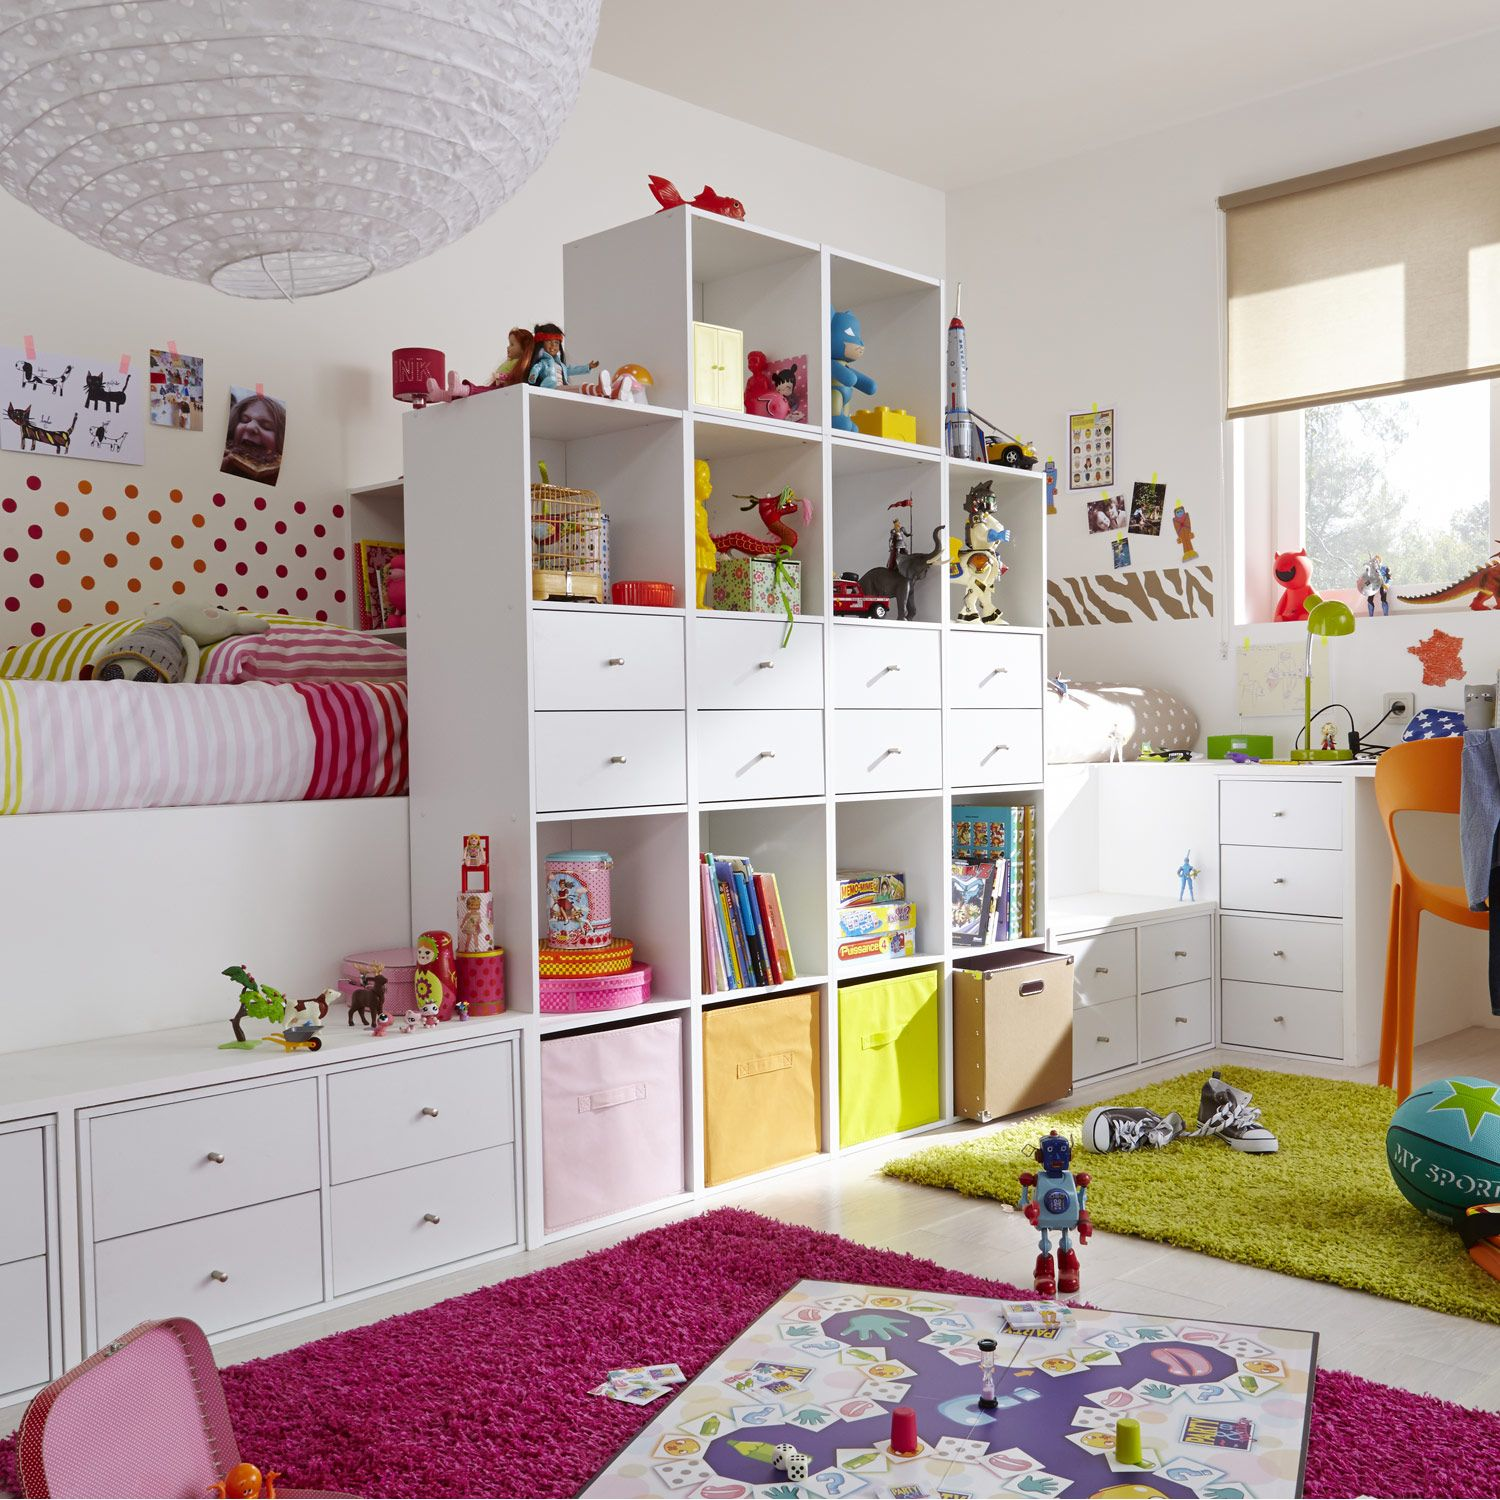 Am nagement d coratif multikaz 32 chambre d 39 enfant leroy for Idee amenagement chambre enfant